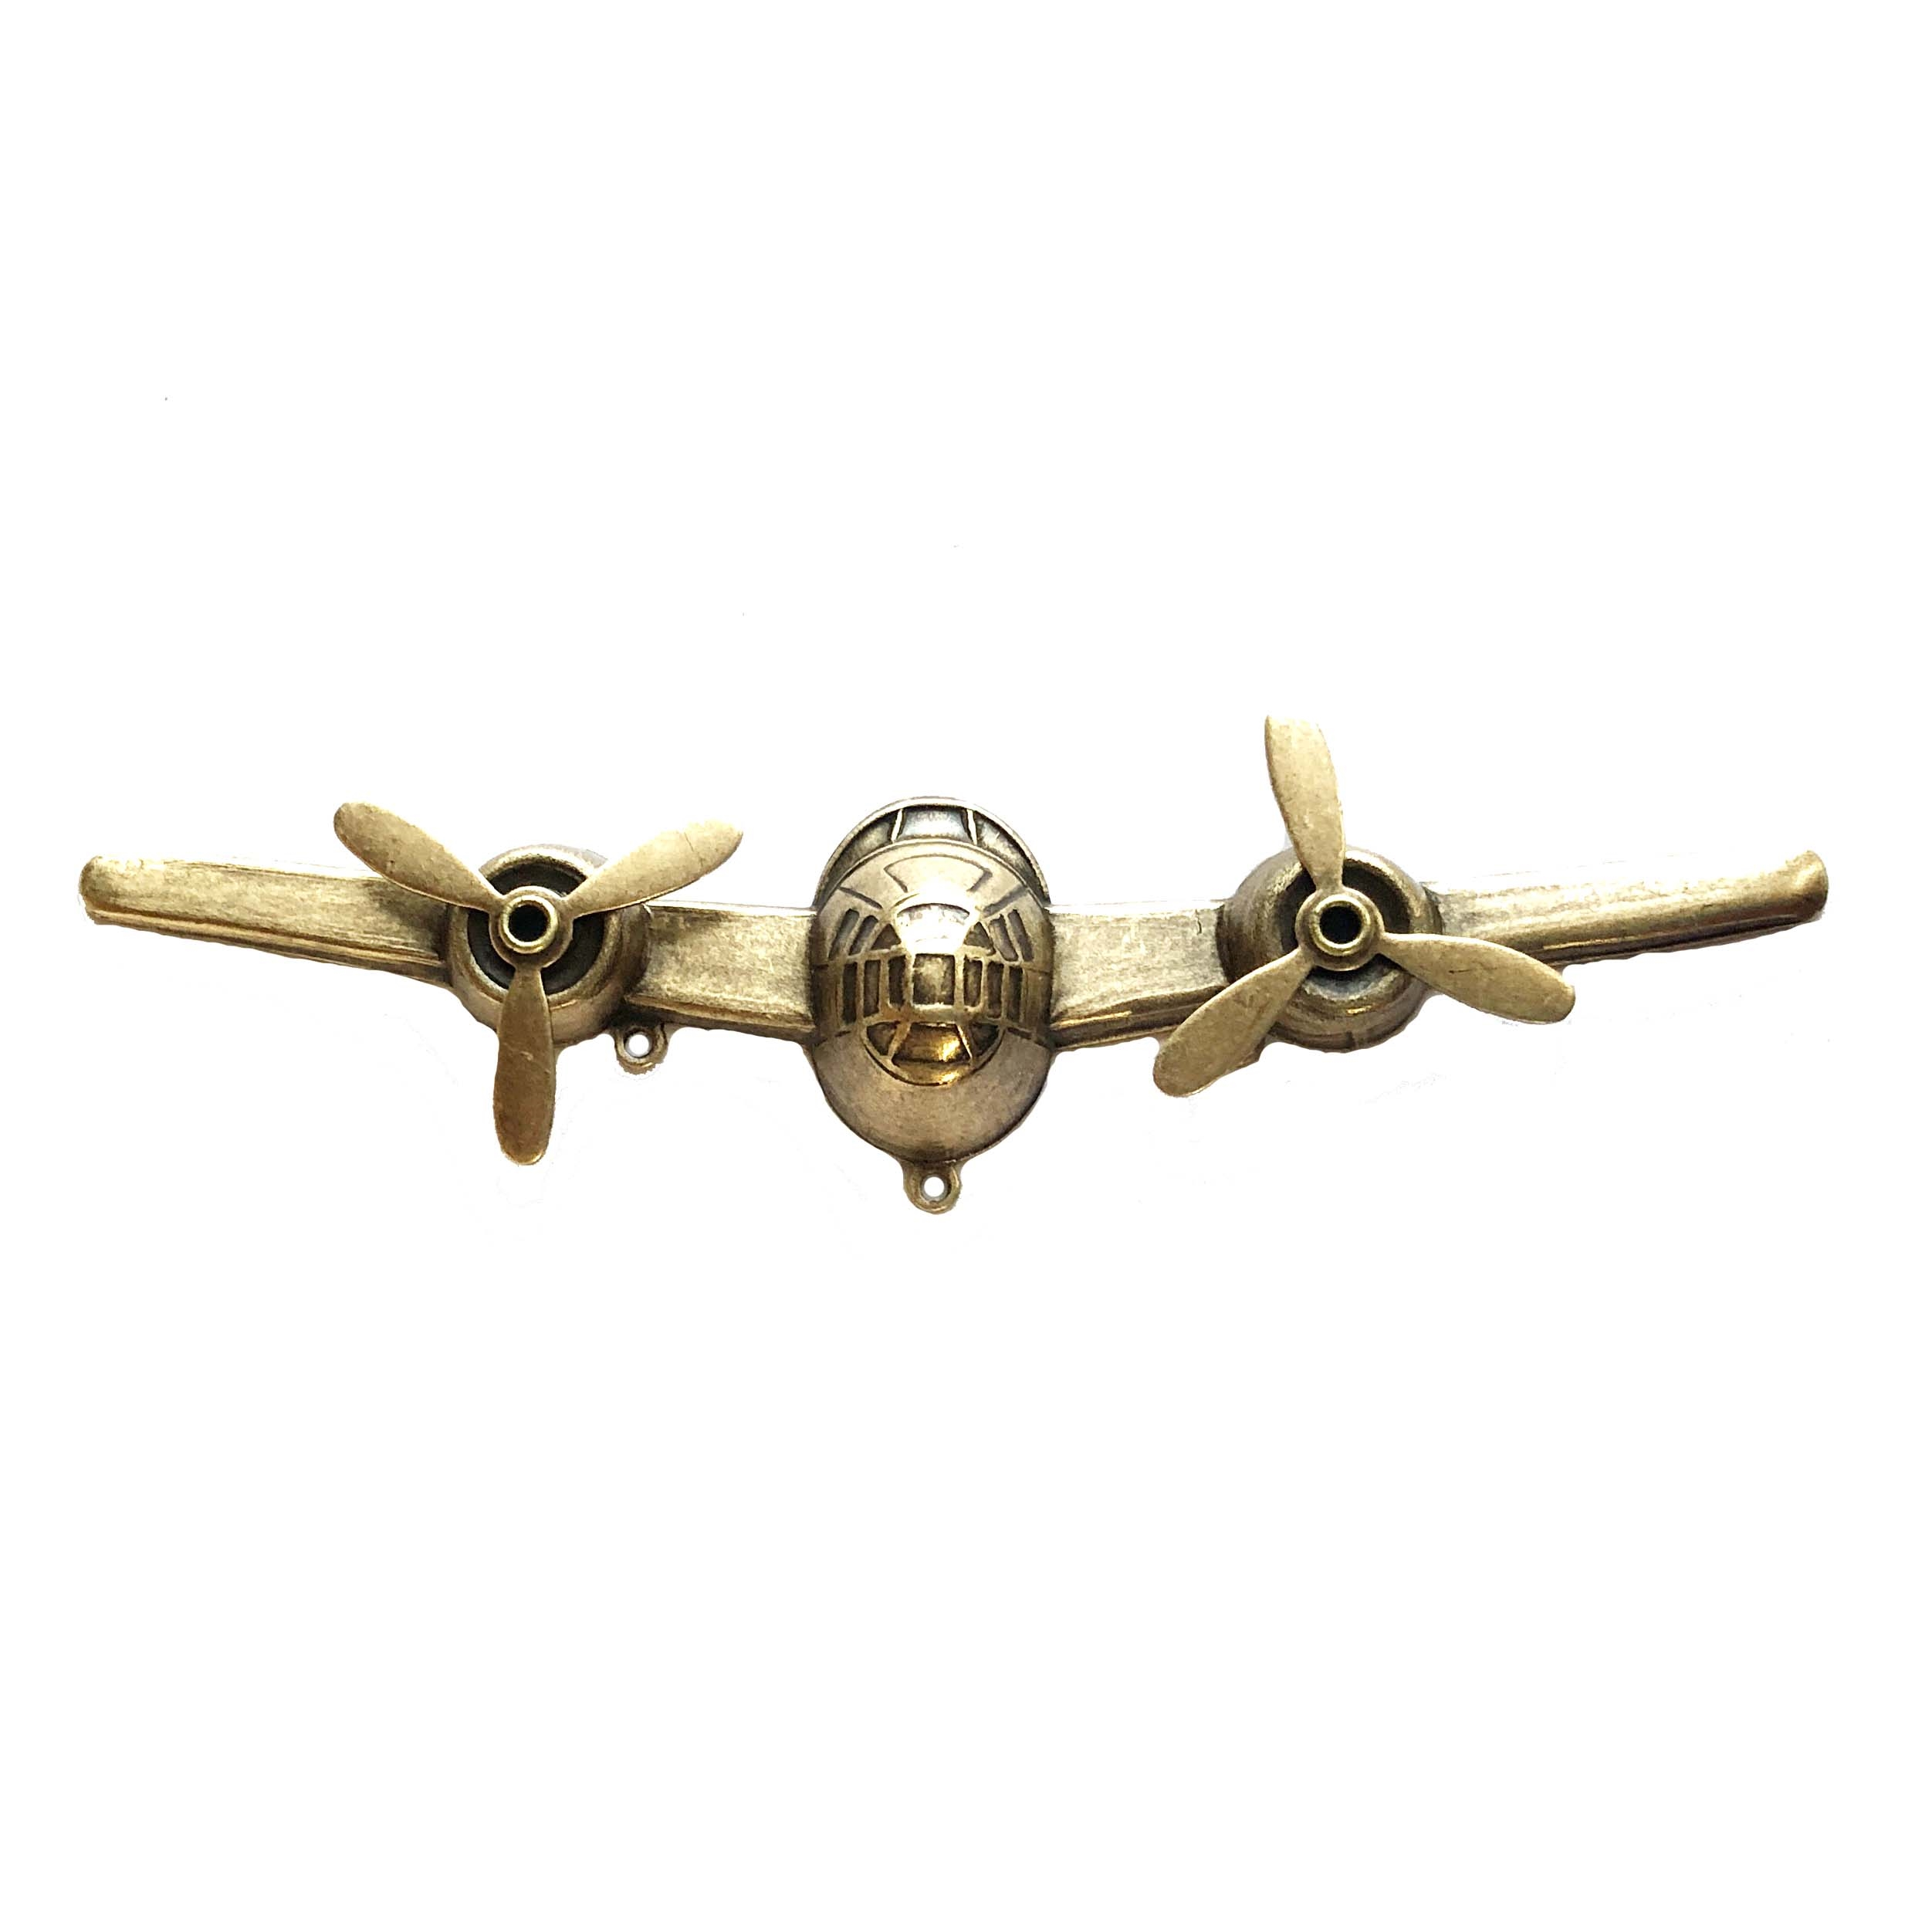 airplane stampings, propellers, brass ox, 0561, brass stampings, brass propellers, steampunk art, US made, nickel free jewelry supplies, bsueboutiques, jewelry making supplies, antique brass